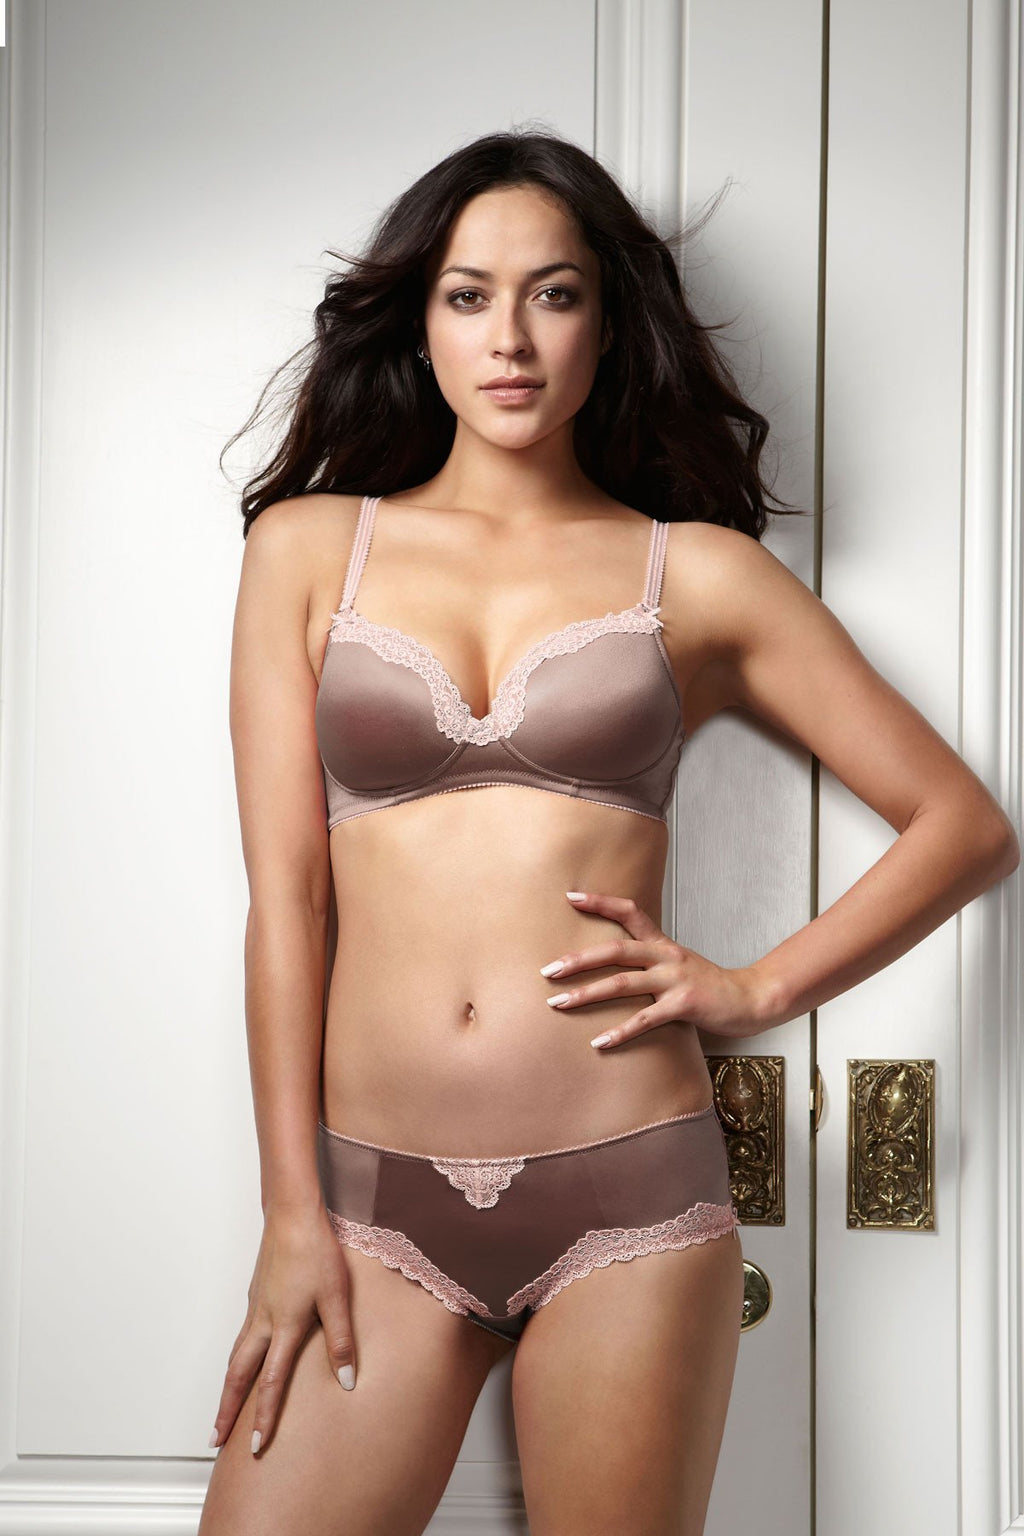 Hotmilk Lingerie Valerie non nursing bra and french knicker